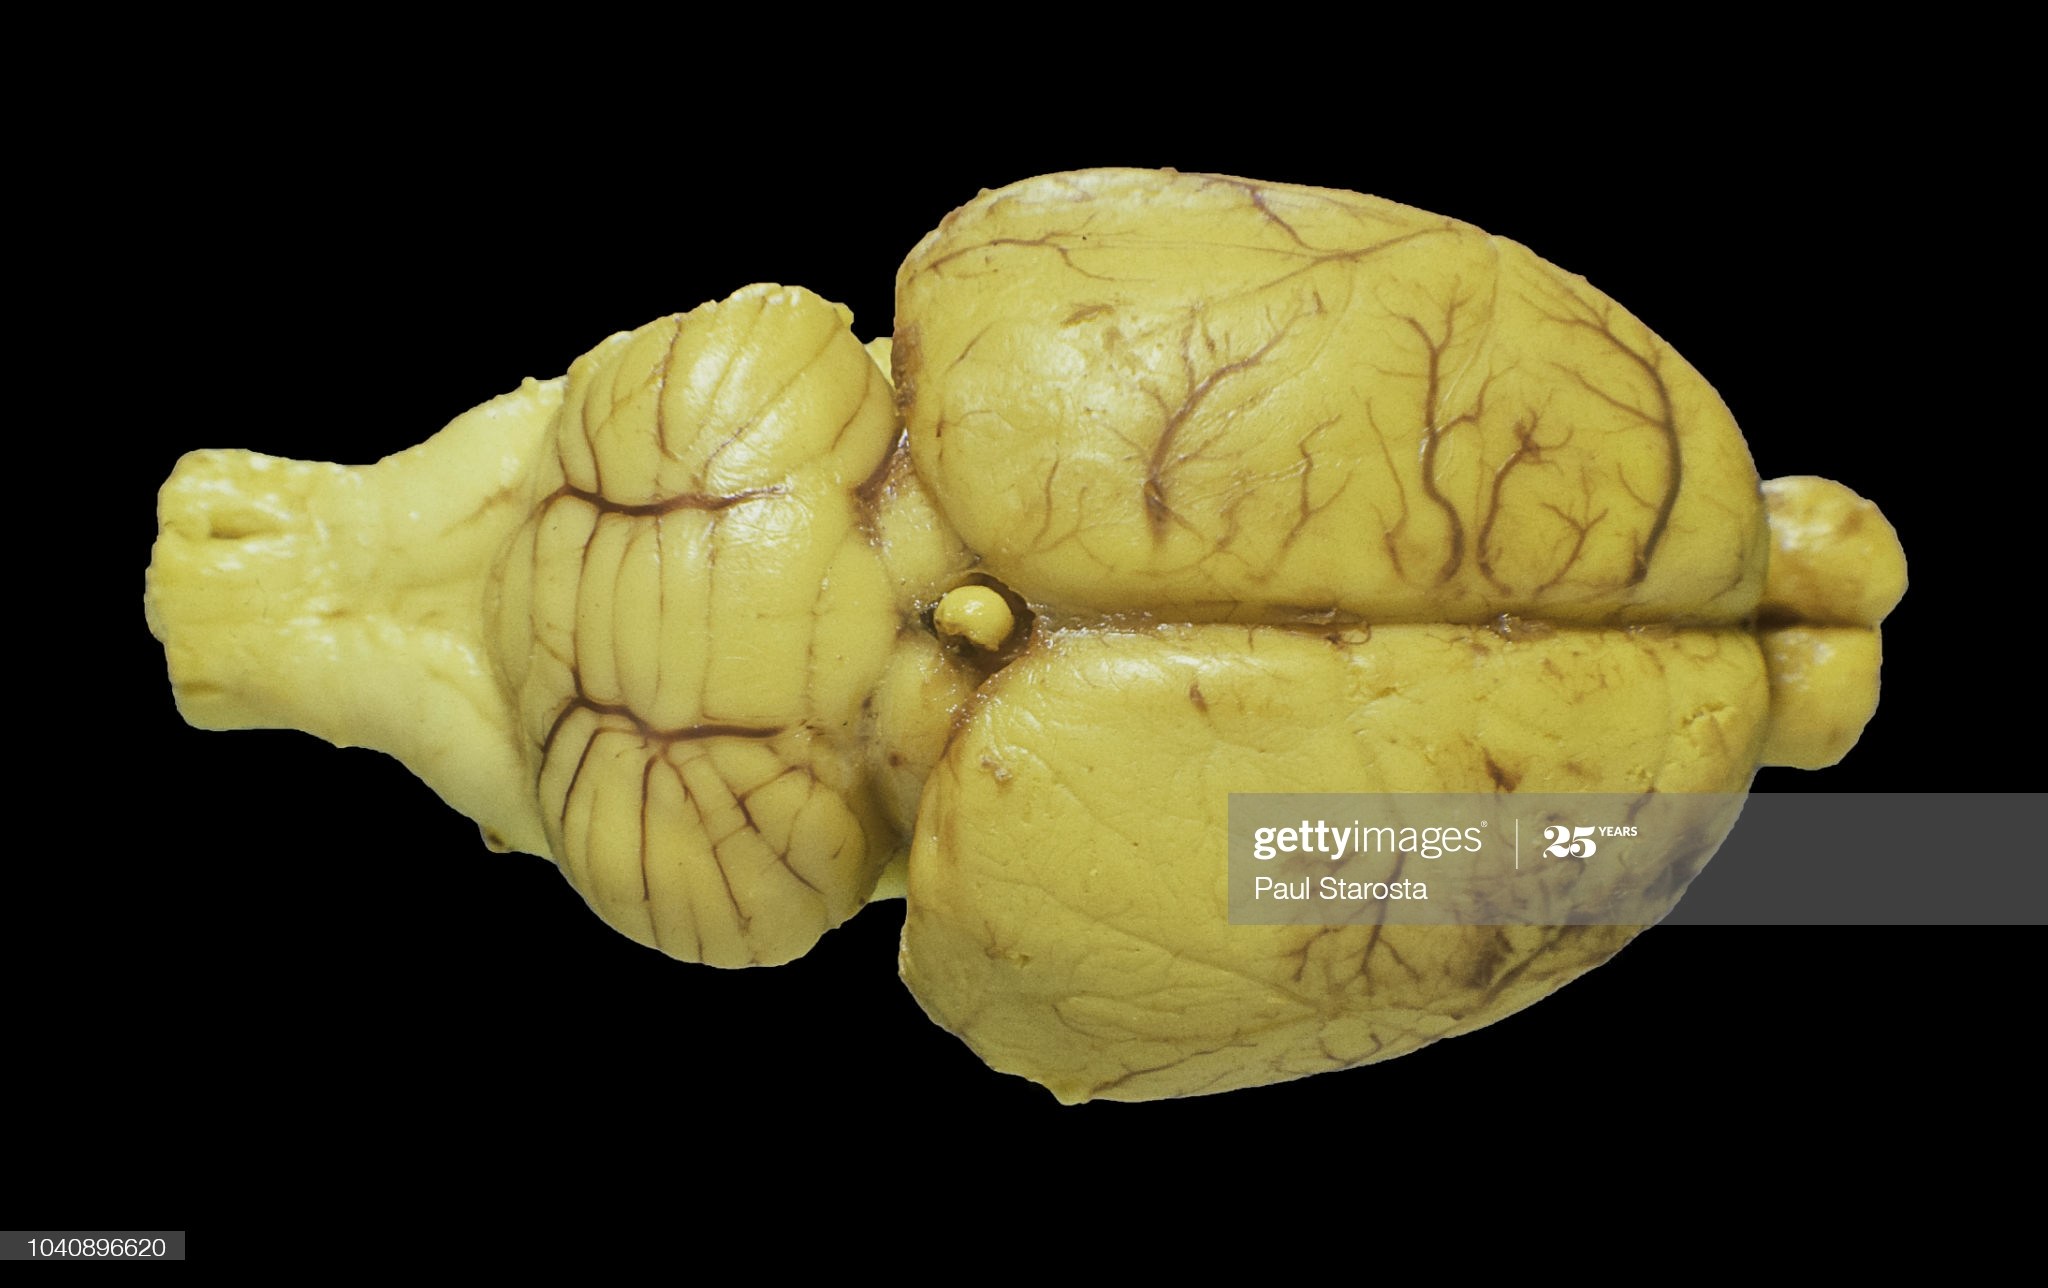 https://www.gettyimages.co.nz/detail/photo/rat-brain-royalty-free-image/1040896620?adppopup=true